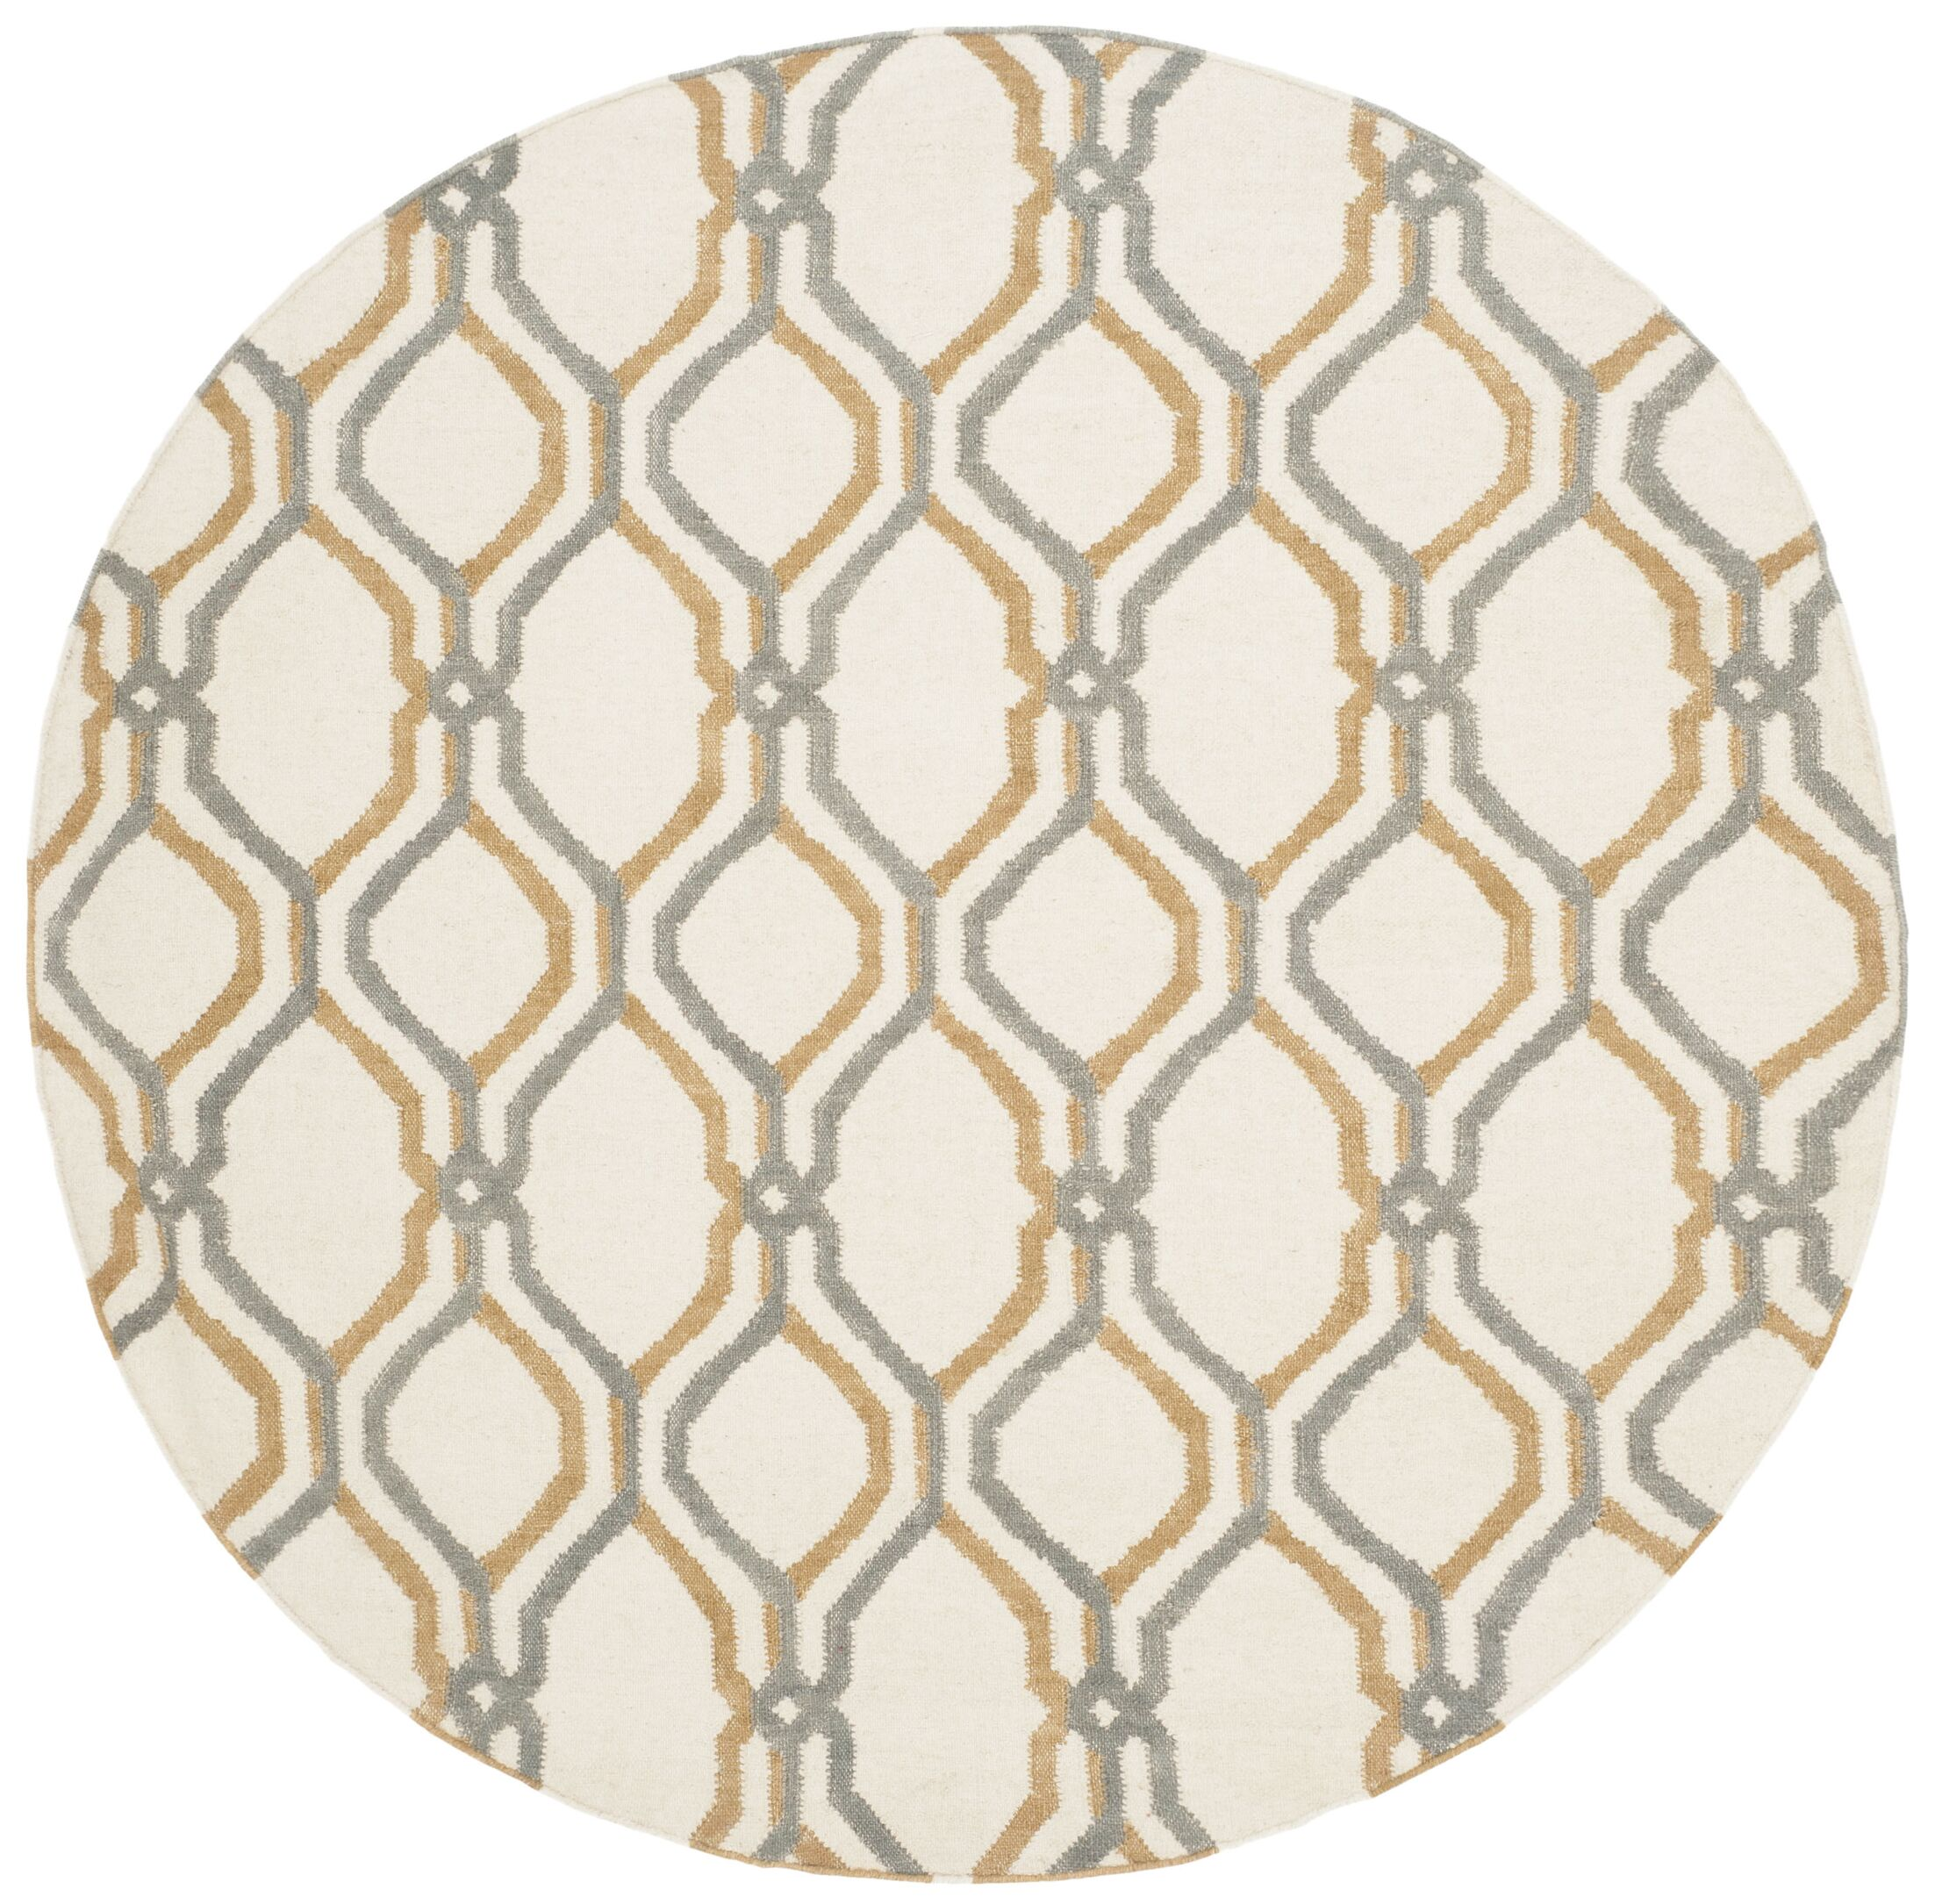 Dhurries Ivory / Blue Area Rug Rug Size: Round 6'